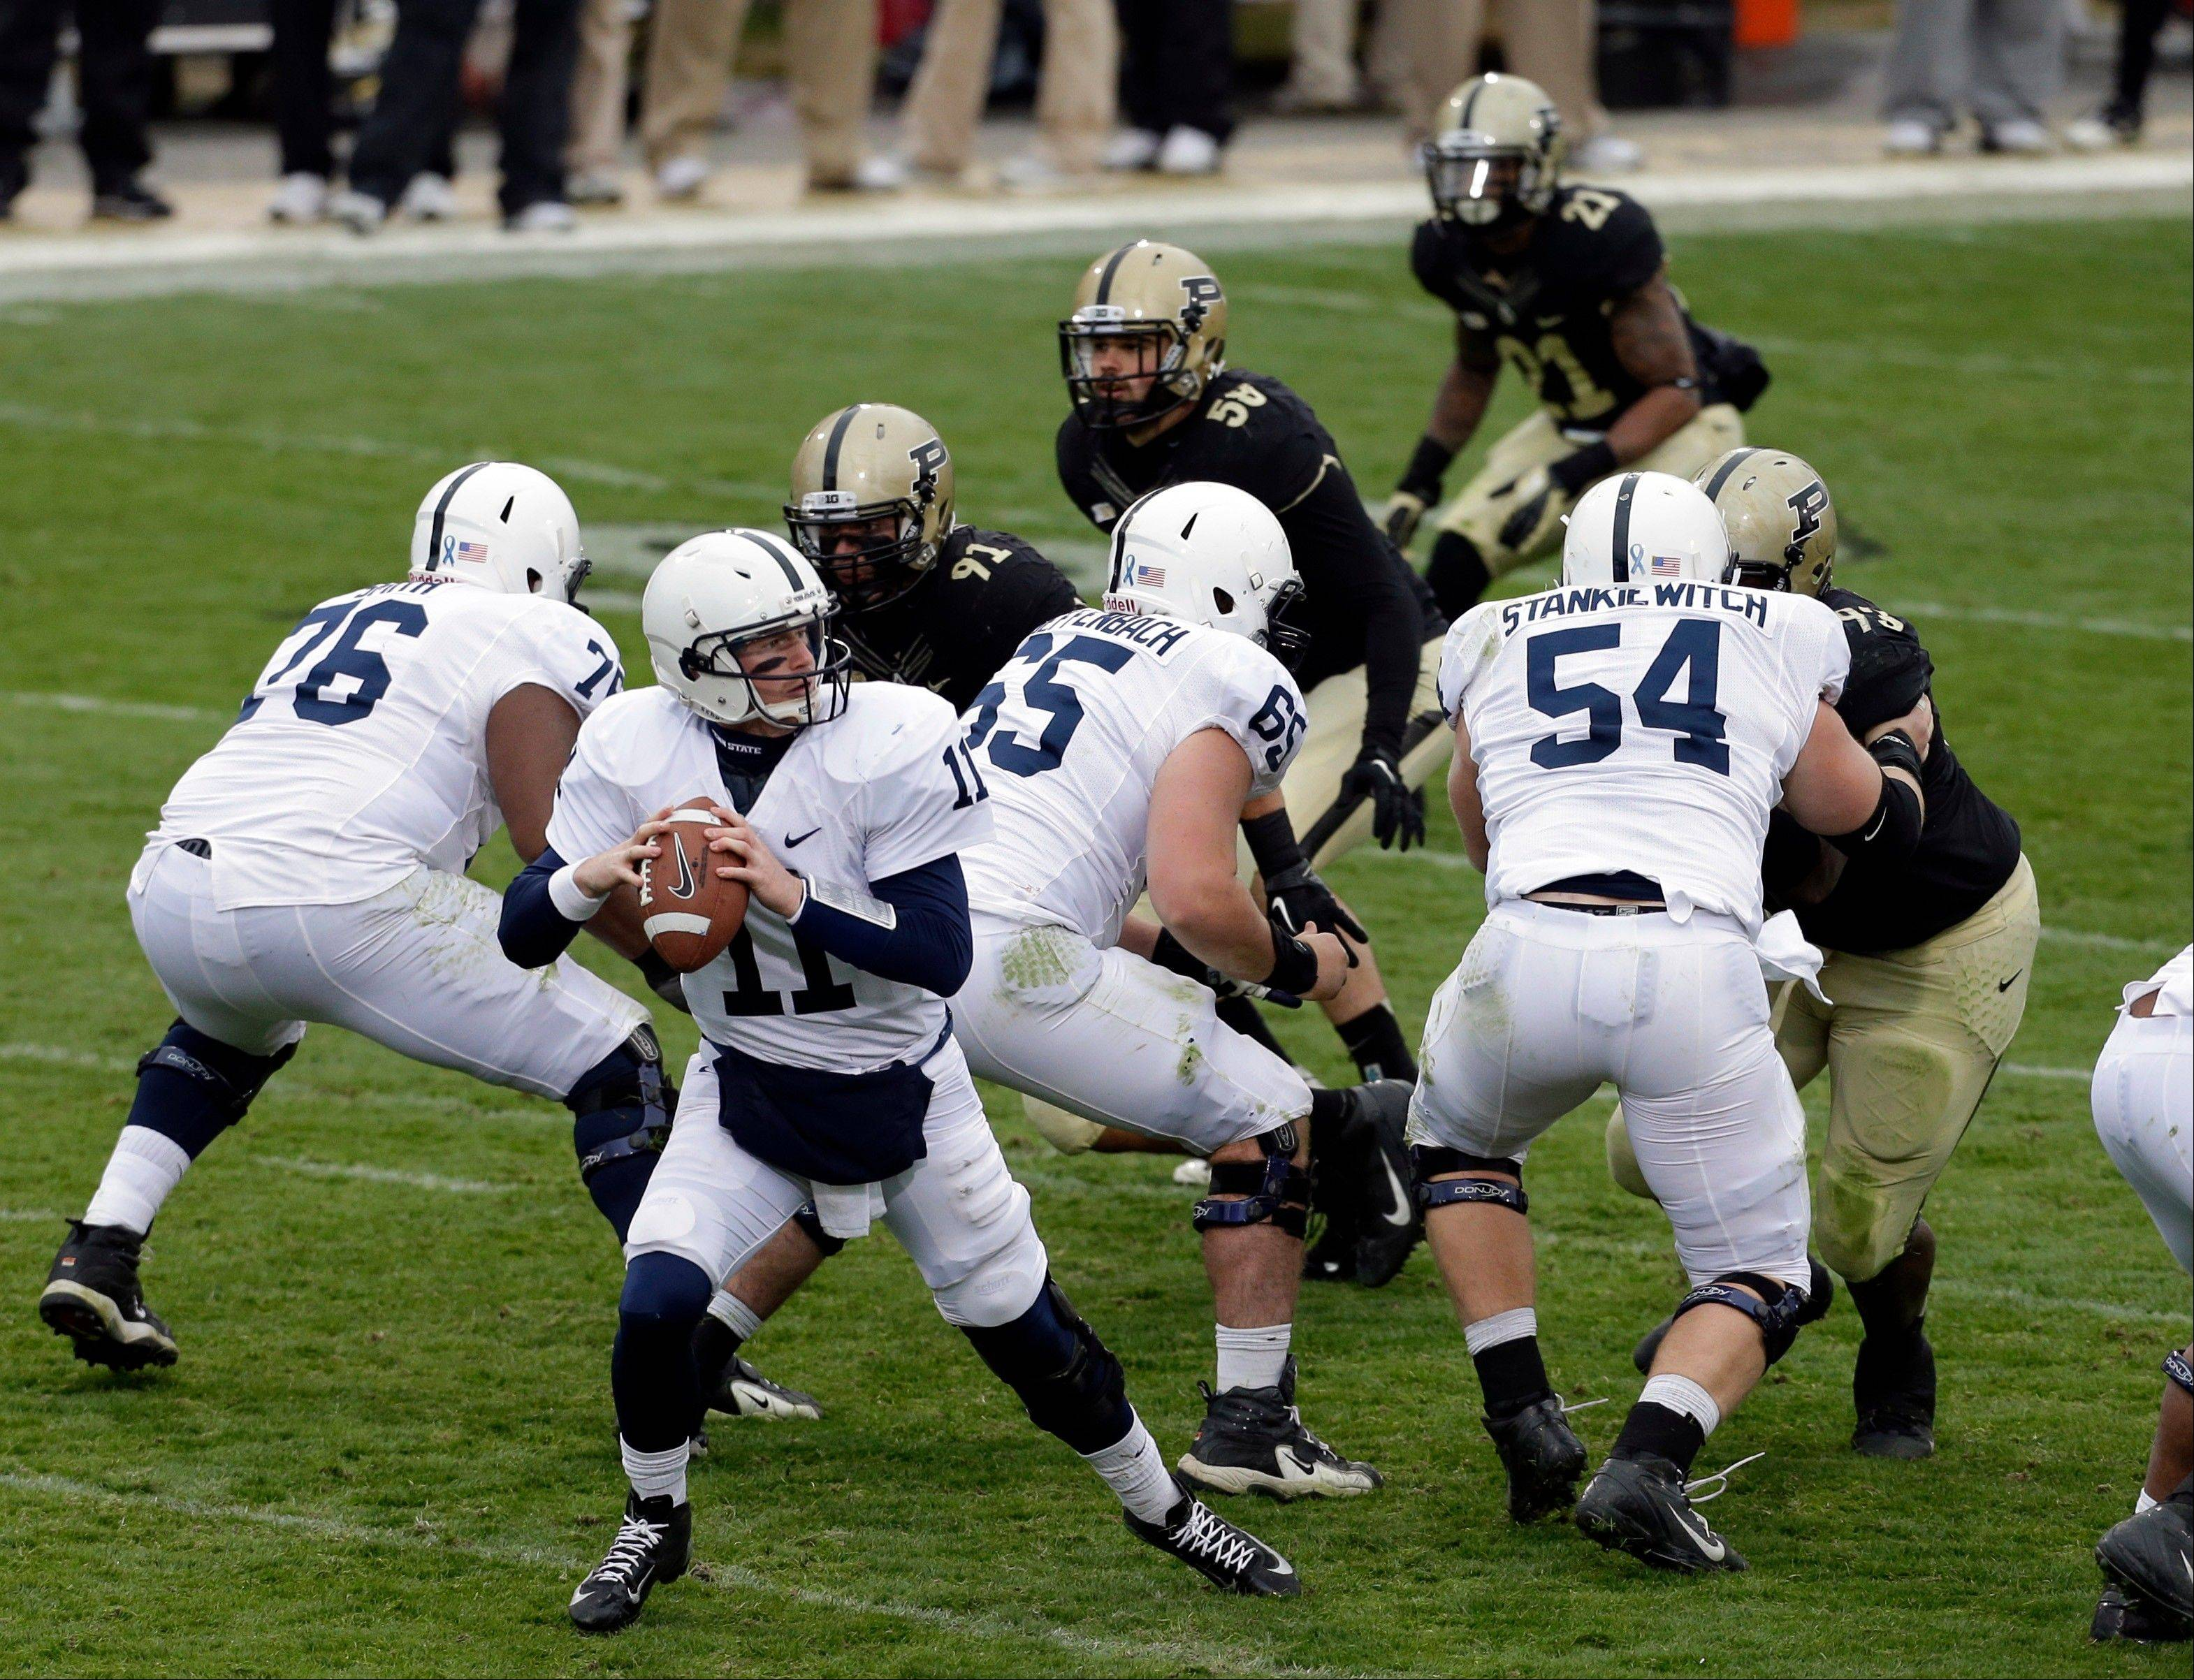 Penn State quarterback Matthew McGloin has thrown 18 touchdown passes this season.